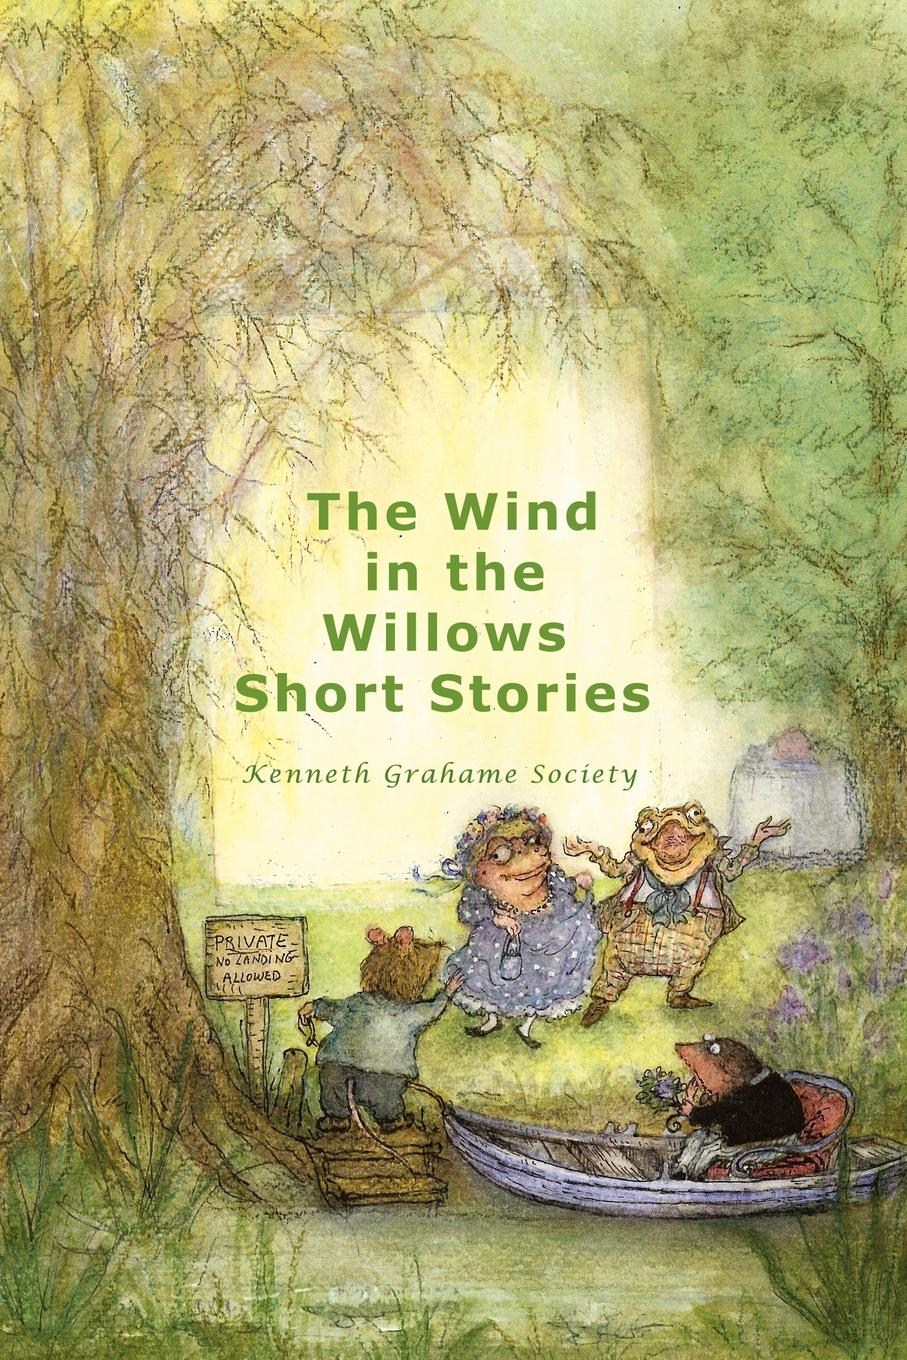 Grahame Society Kenneth Grahame Society The Wind in the Willows Short Stories (Paperback) classic starts wind in the willows